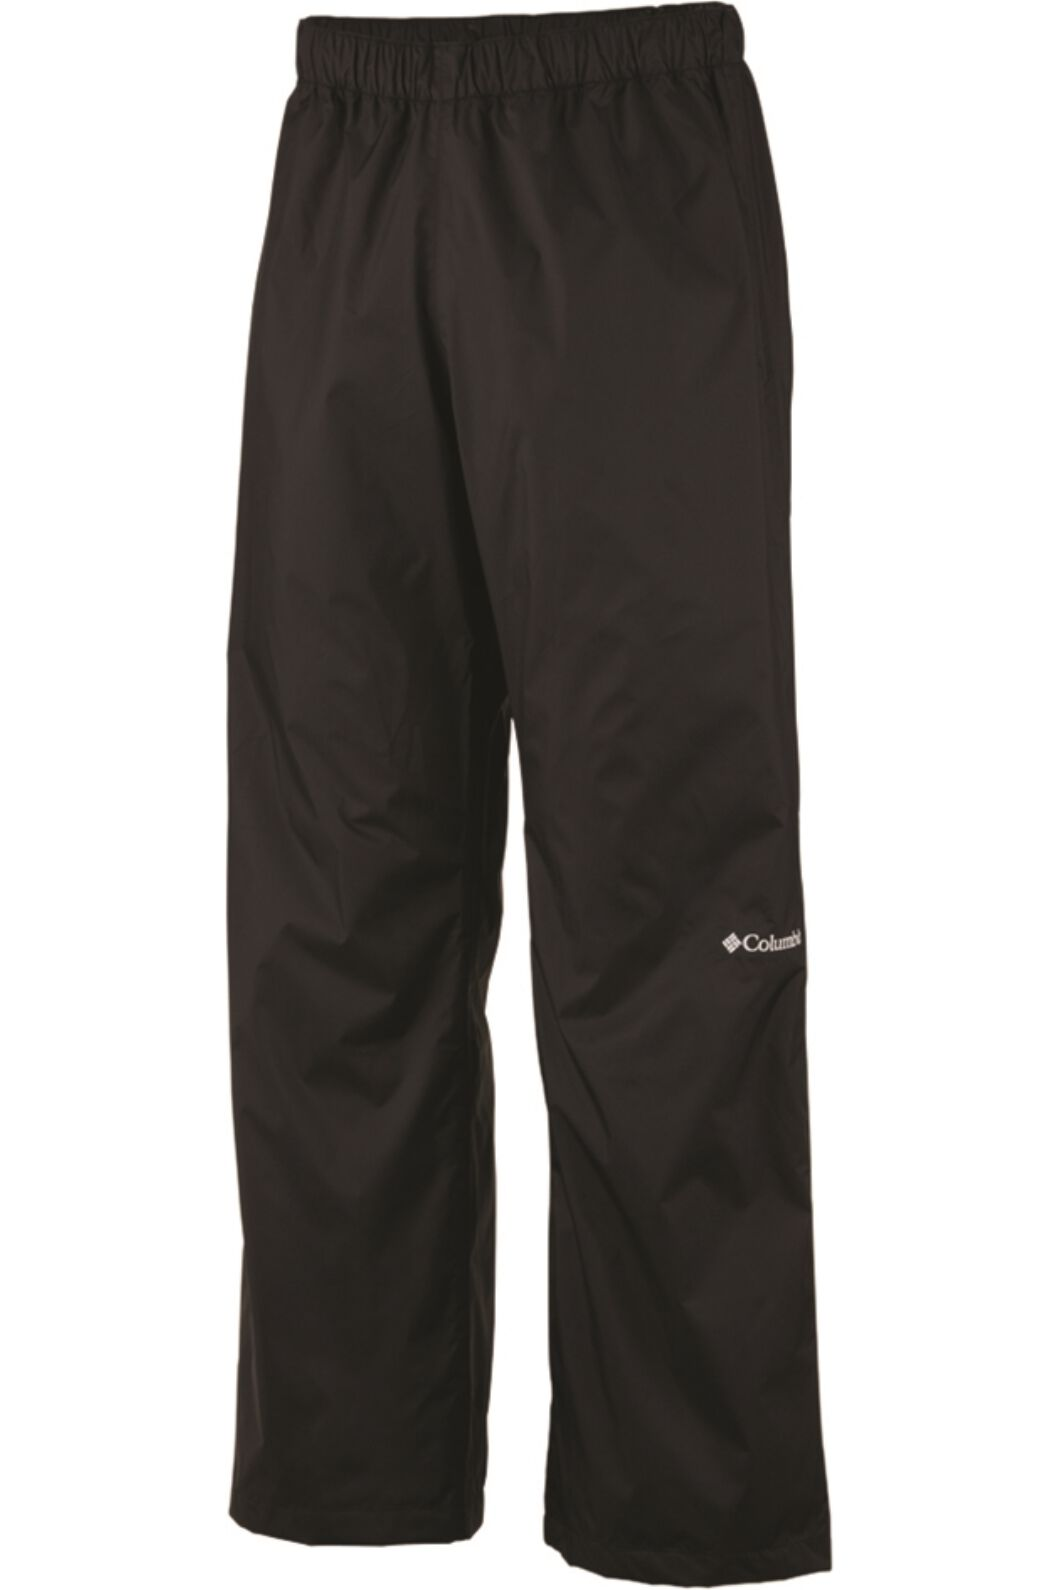 Columbia Men's Rebel Roamer Rain Pants, Black, hi-res